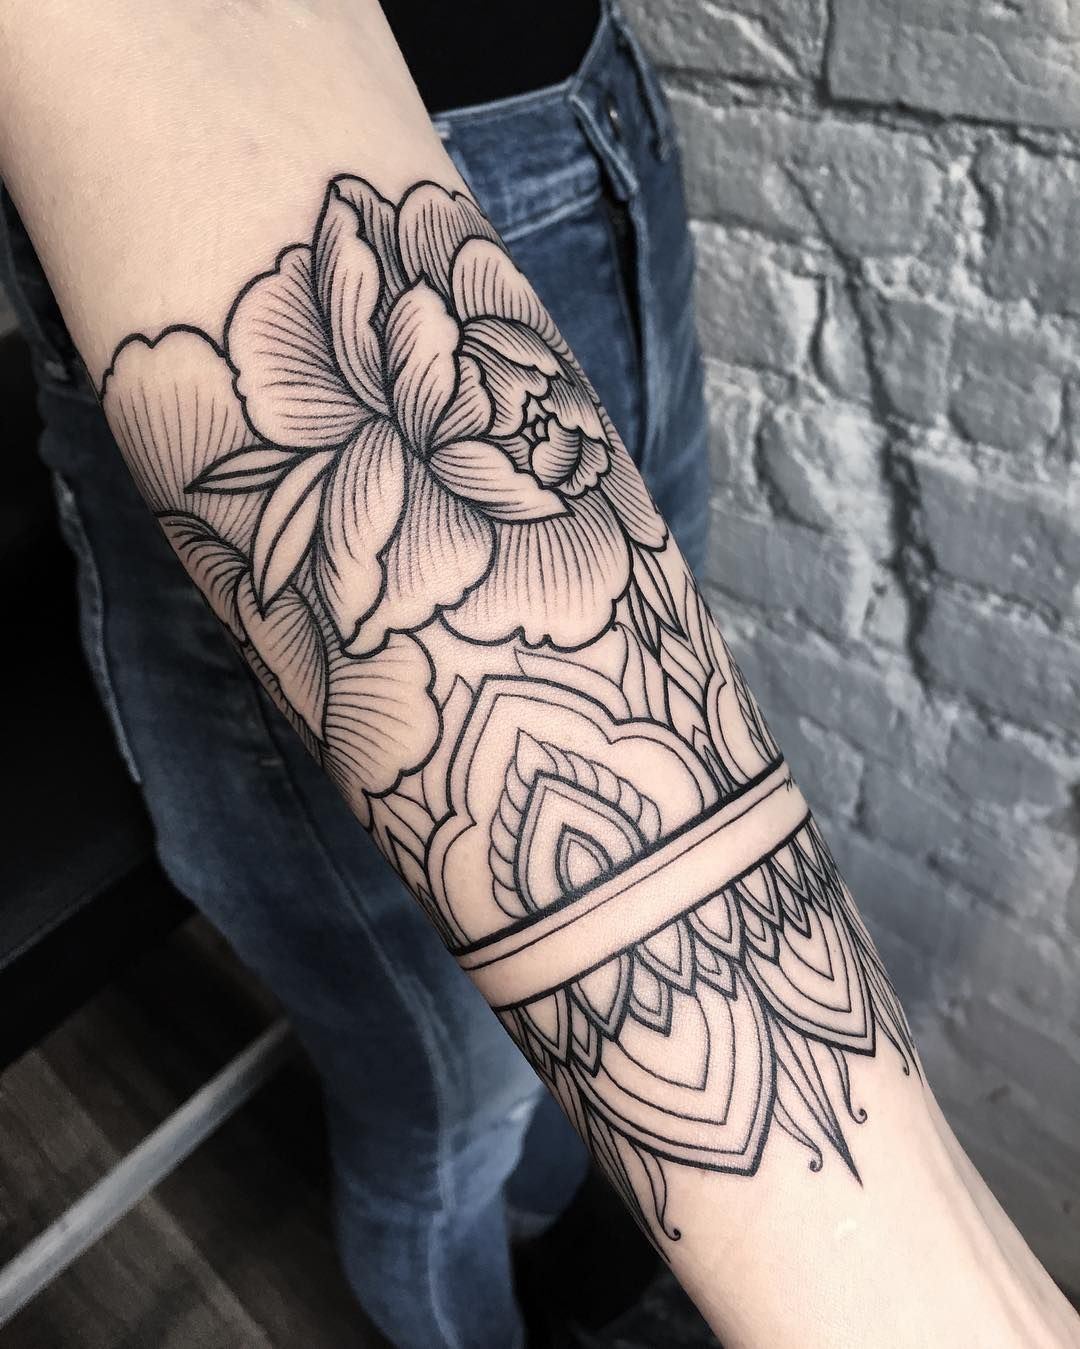 27 Inspiring Rose Tattoos Designs | Rose tattoos, Tattoo and Rose